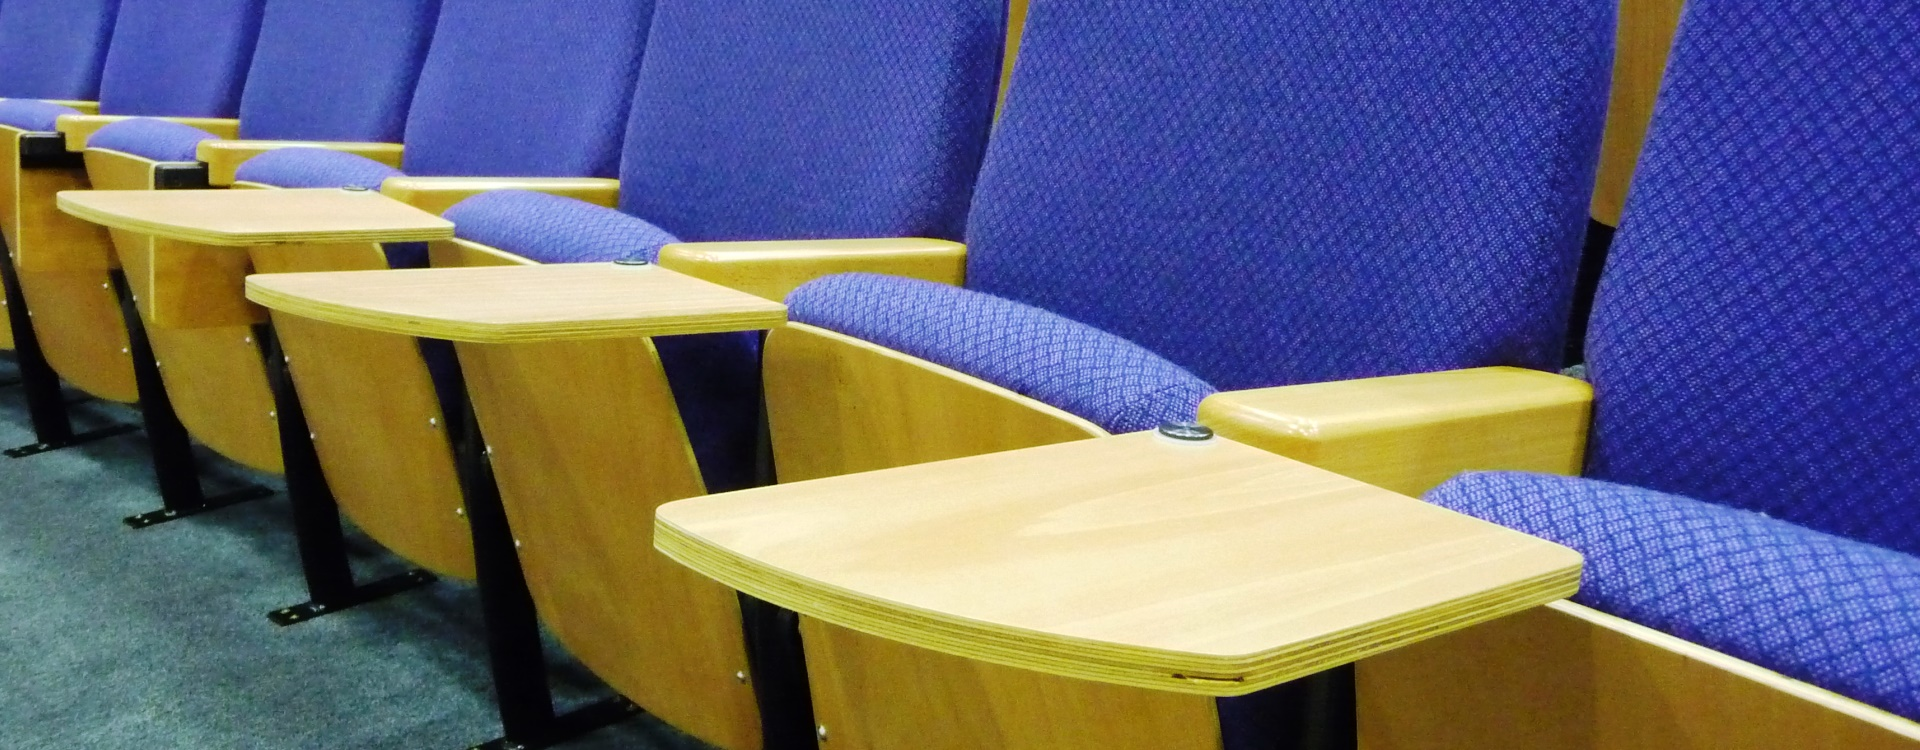 Auditorium Desk Options